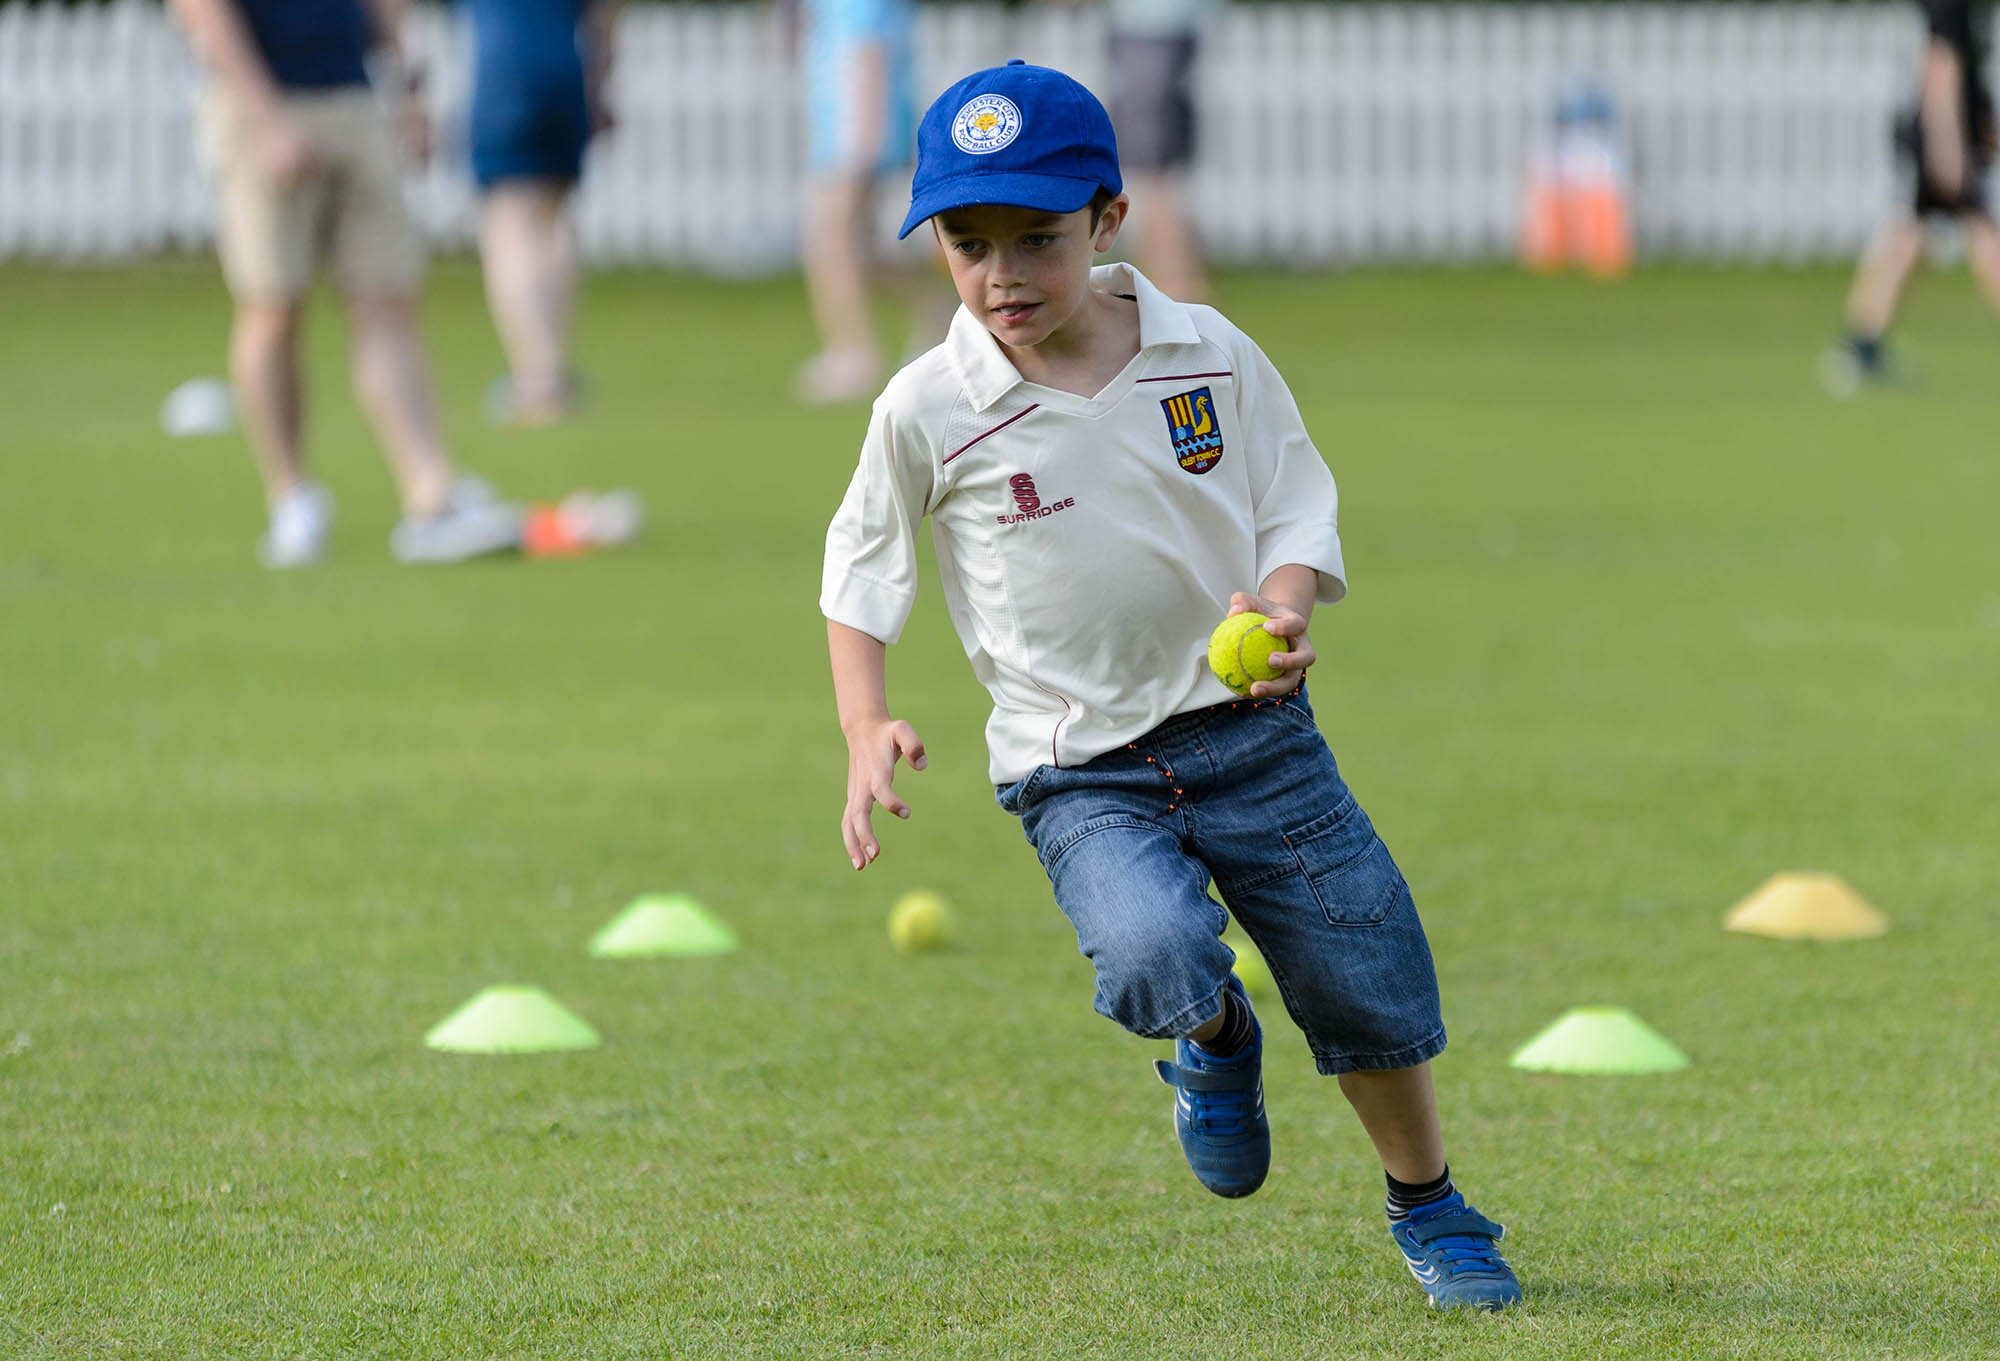 young boy wearing cap running with ball